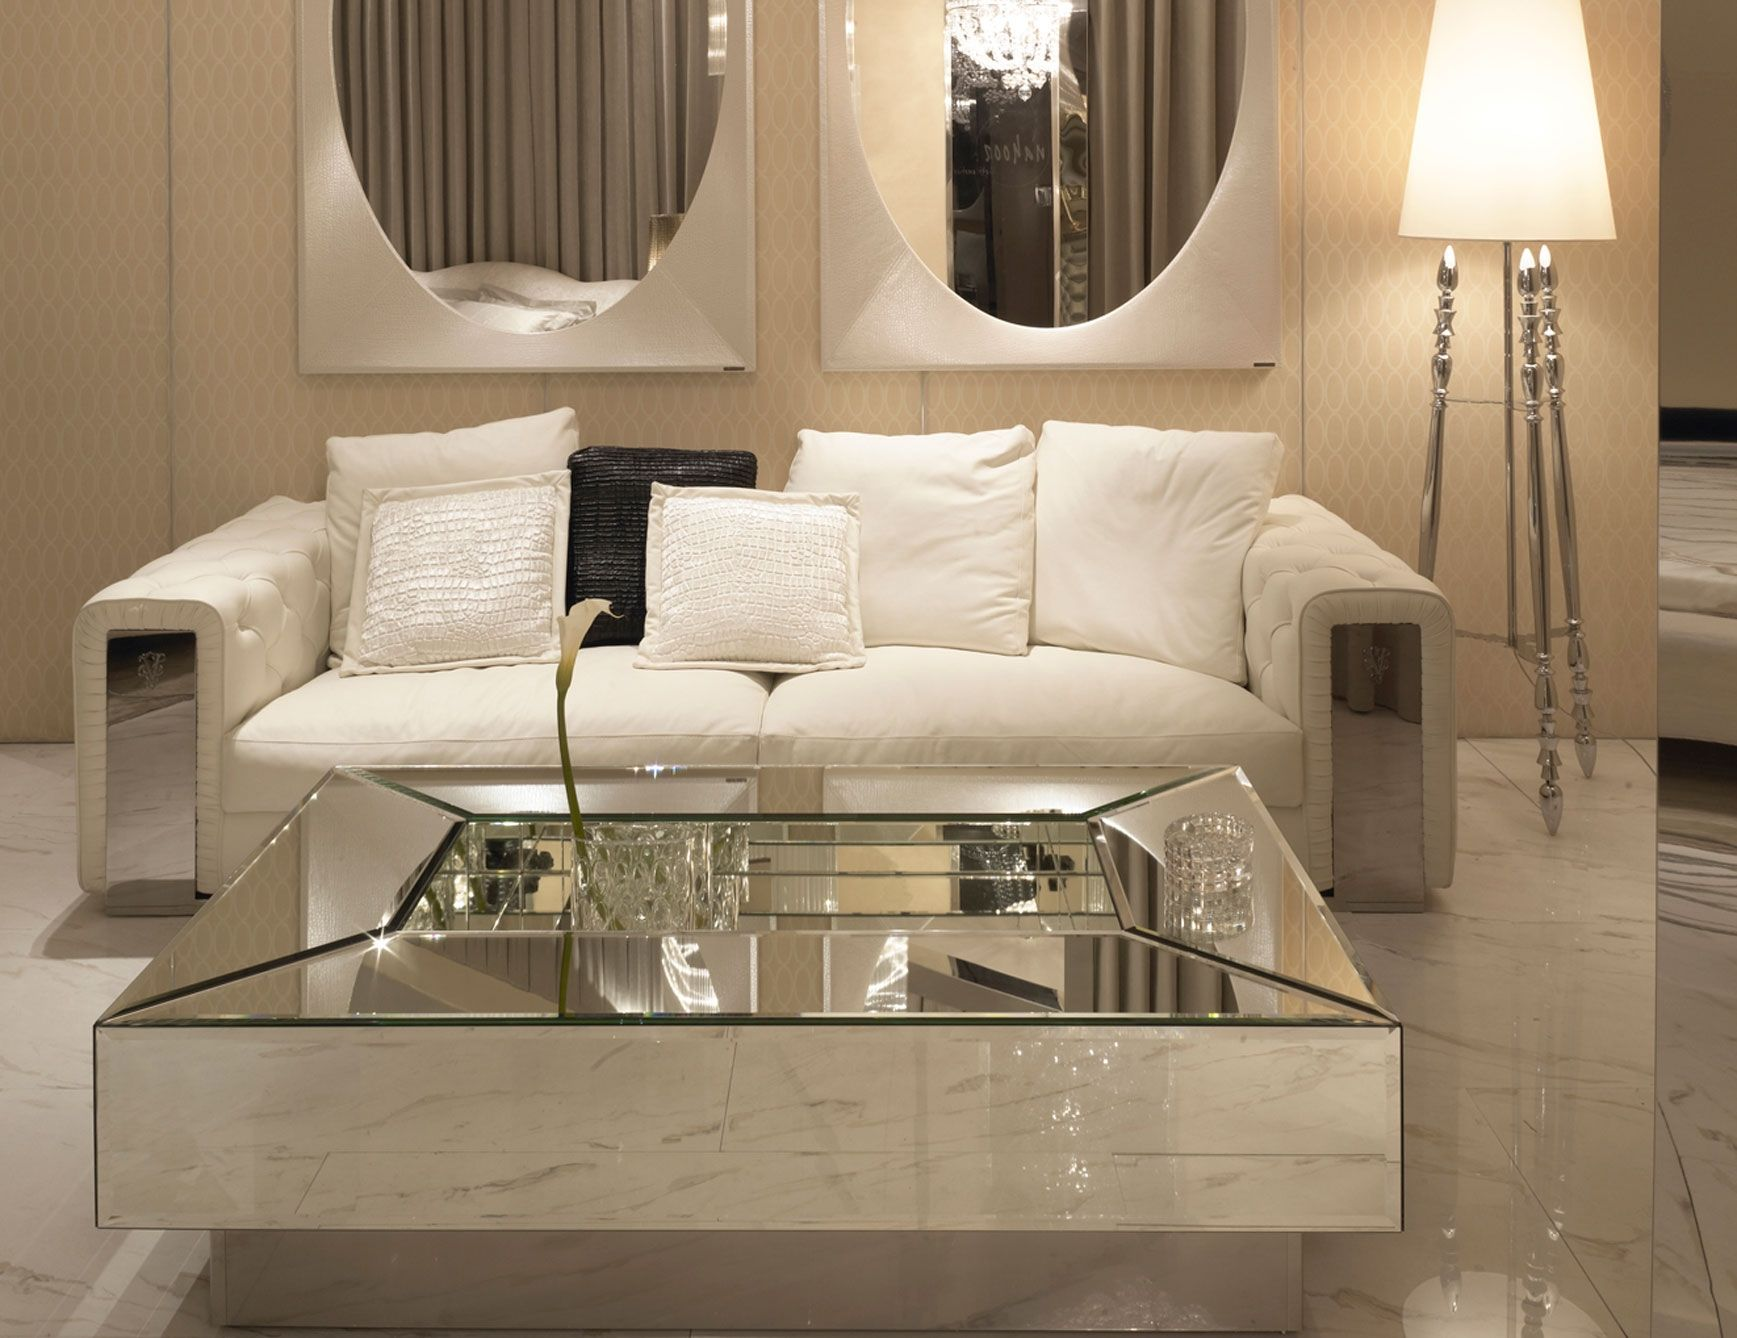 Mesmerizing Mirrored Coffee Table with Glass and Wood bined Furniture Modern Minimalist Living Room Design